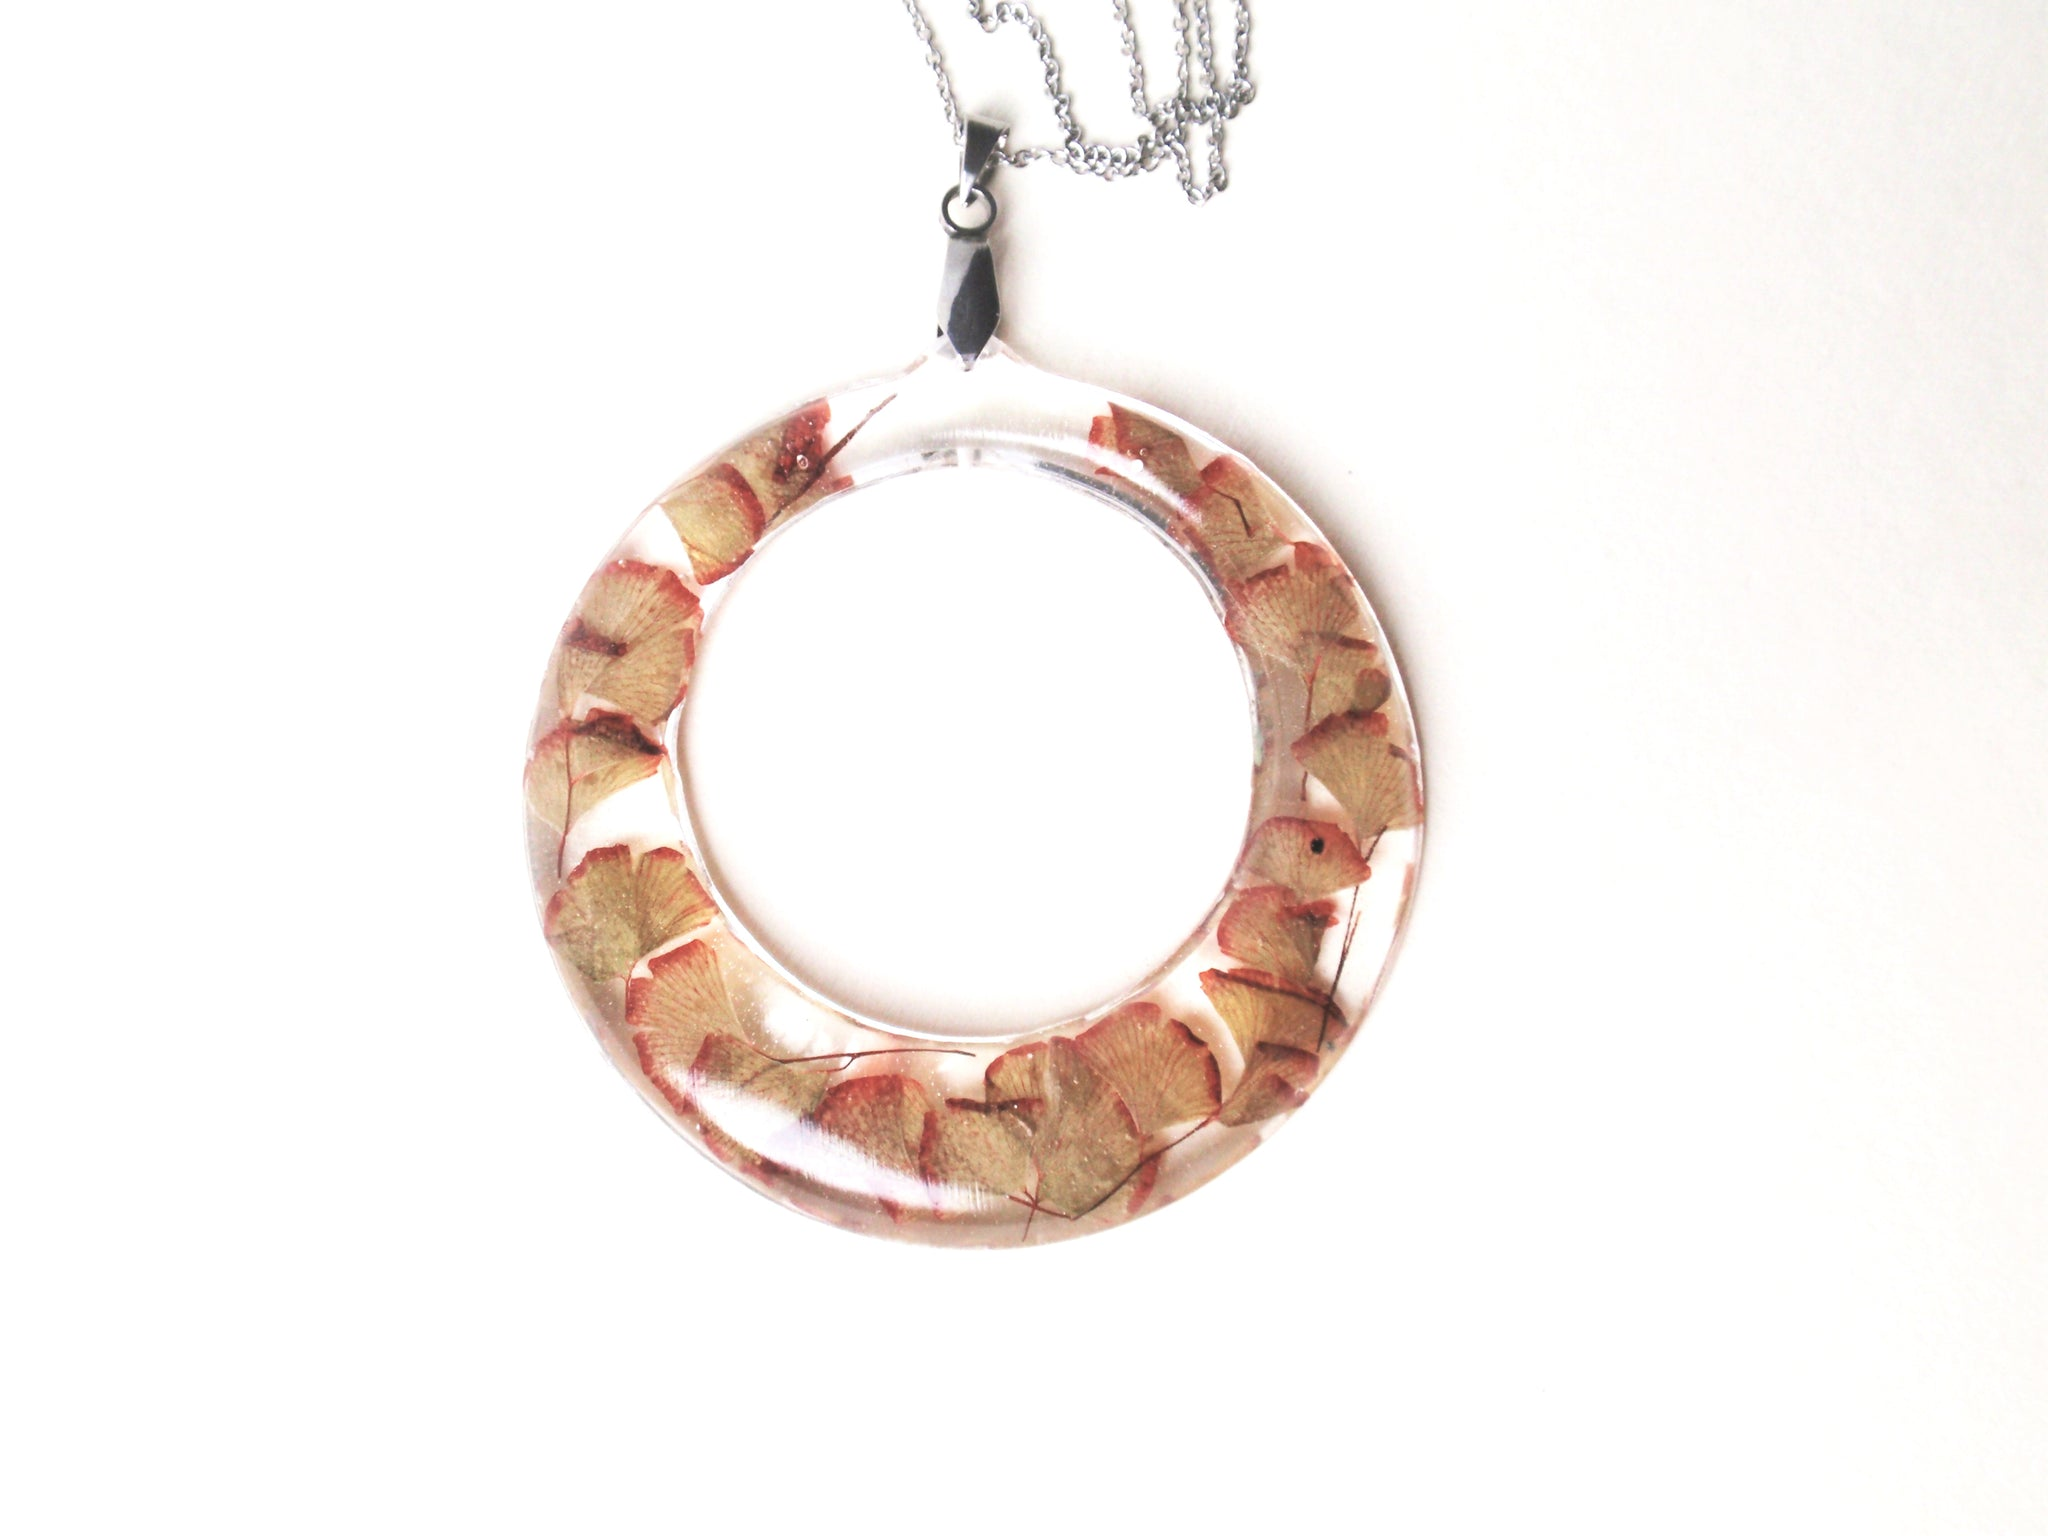 Handmade Maidenhair fern hoop necklace